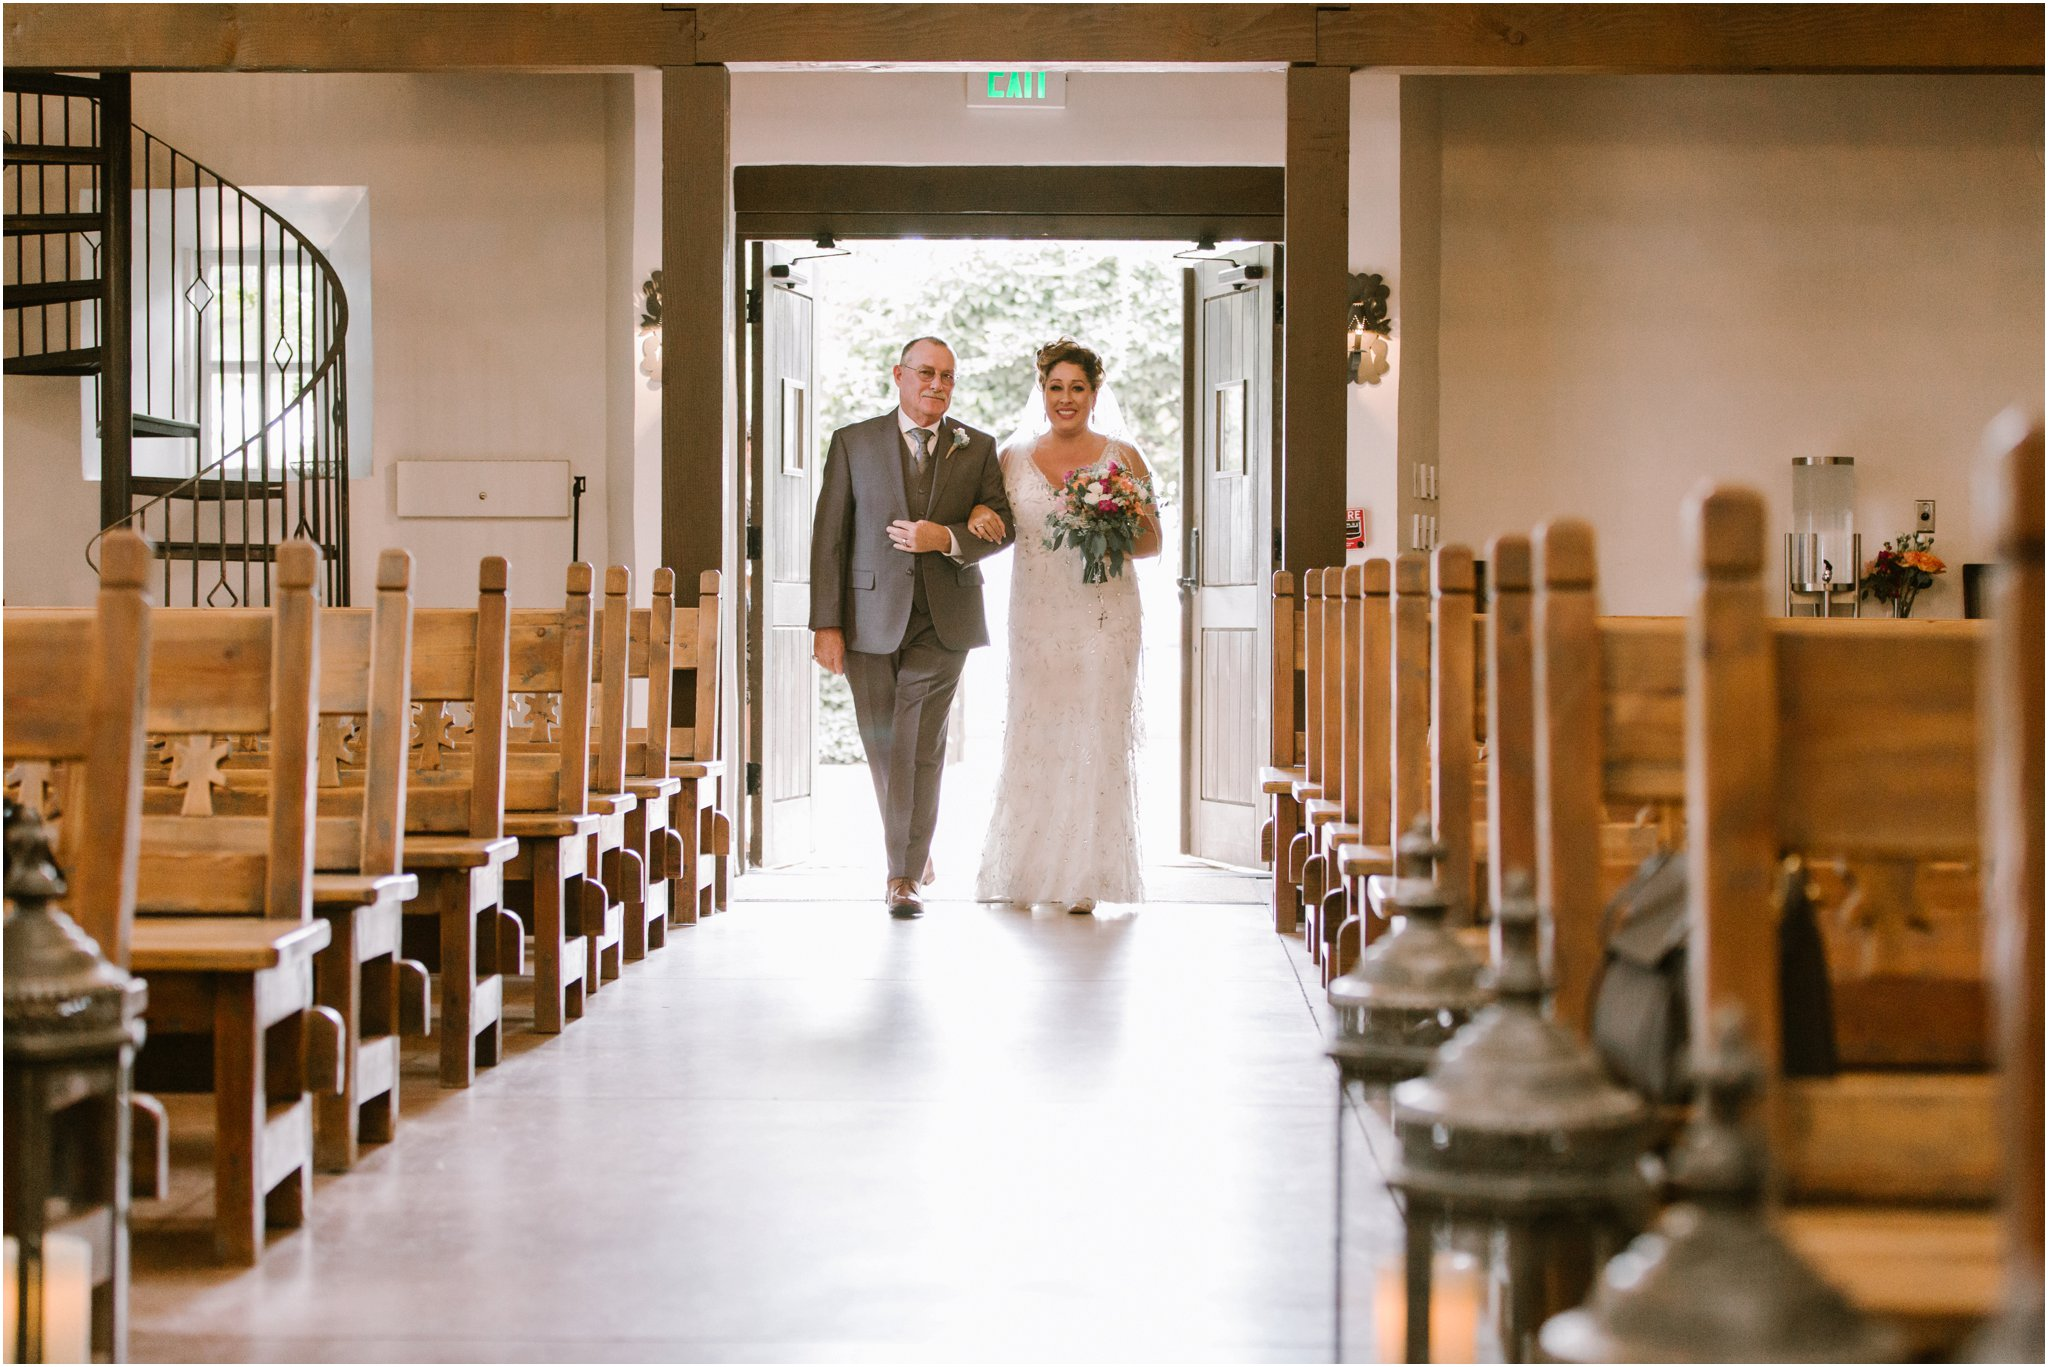 0014Hotel Albuquerque Wedding, Inn and Spa at Loretto wedding, Santa Fe wedding photographers, blue rose photography